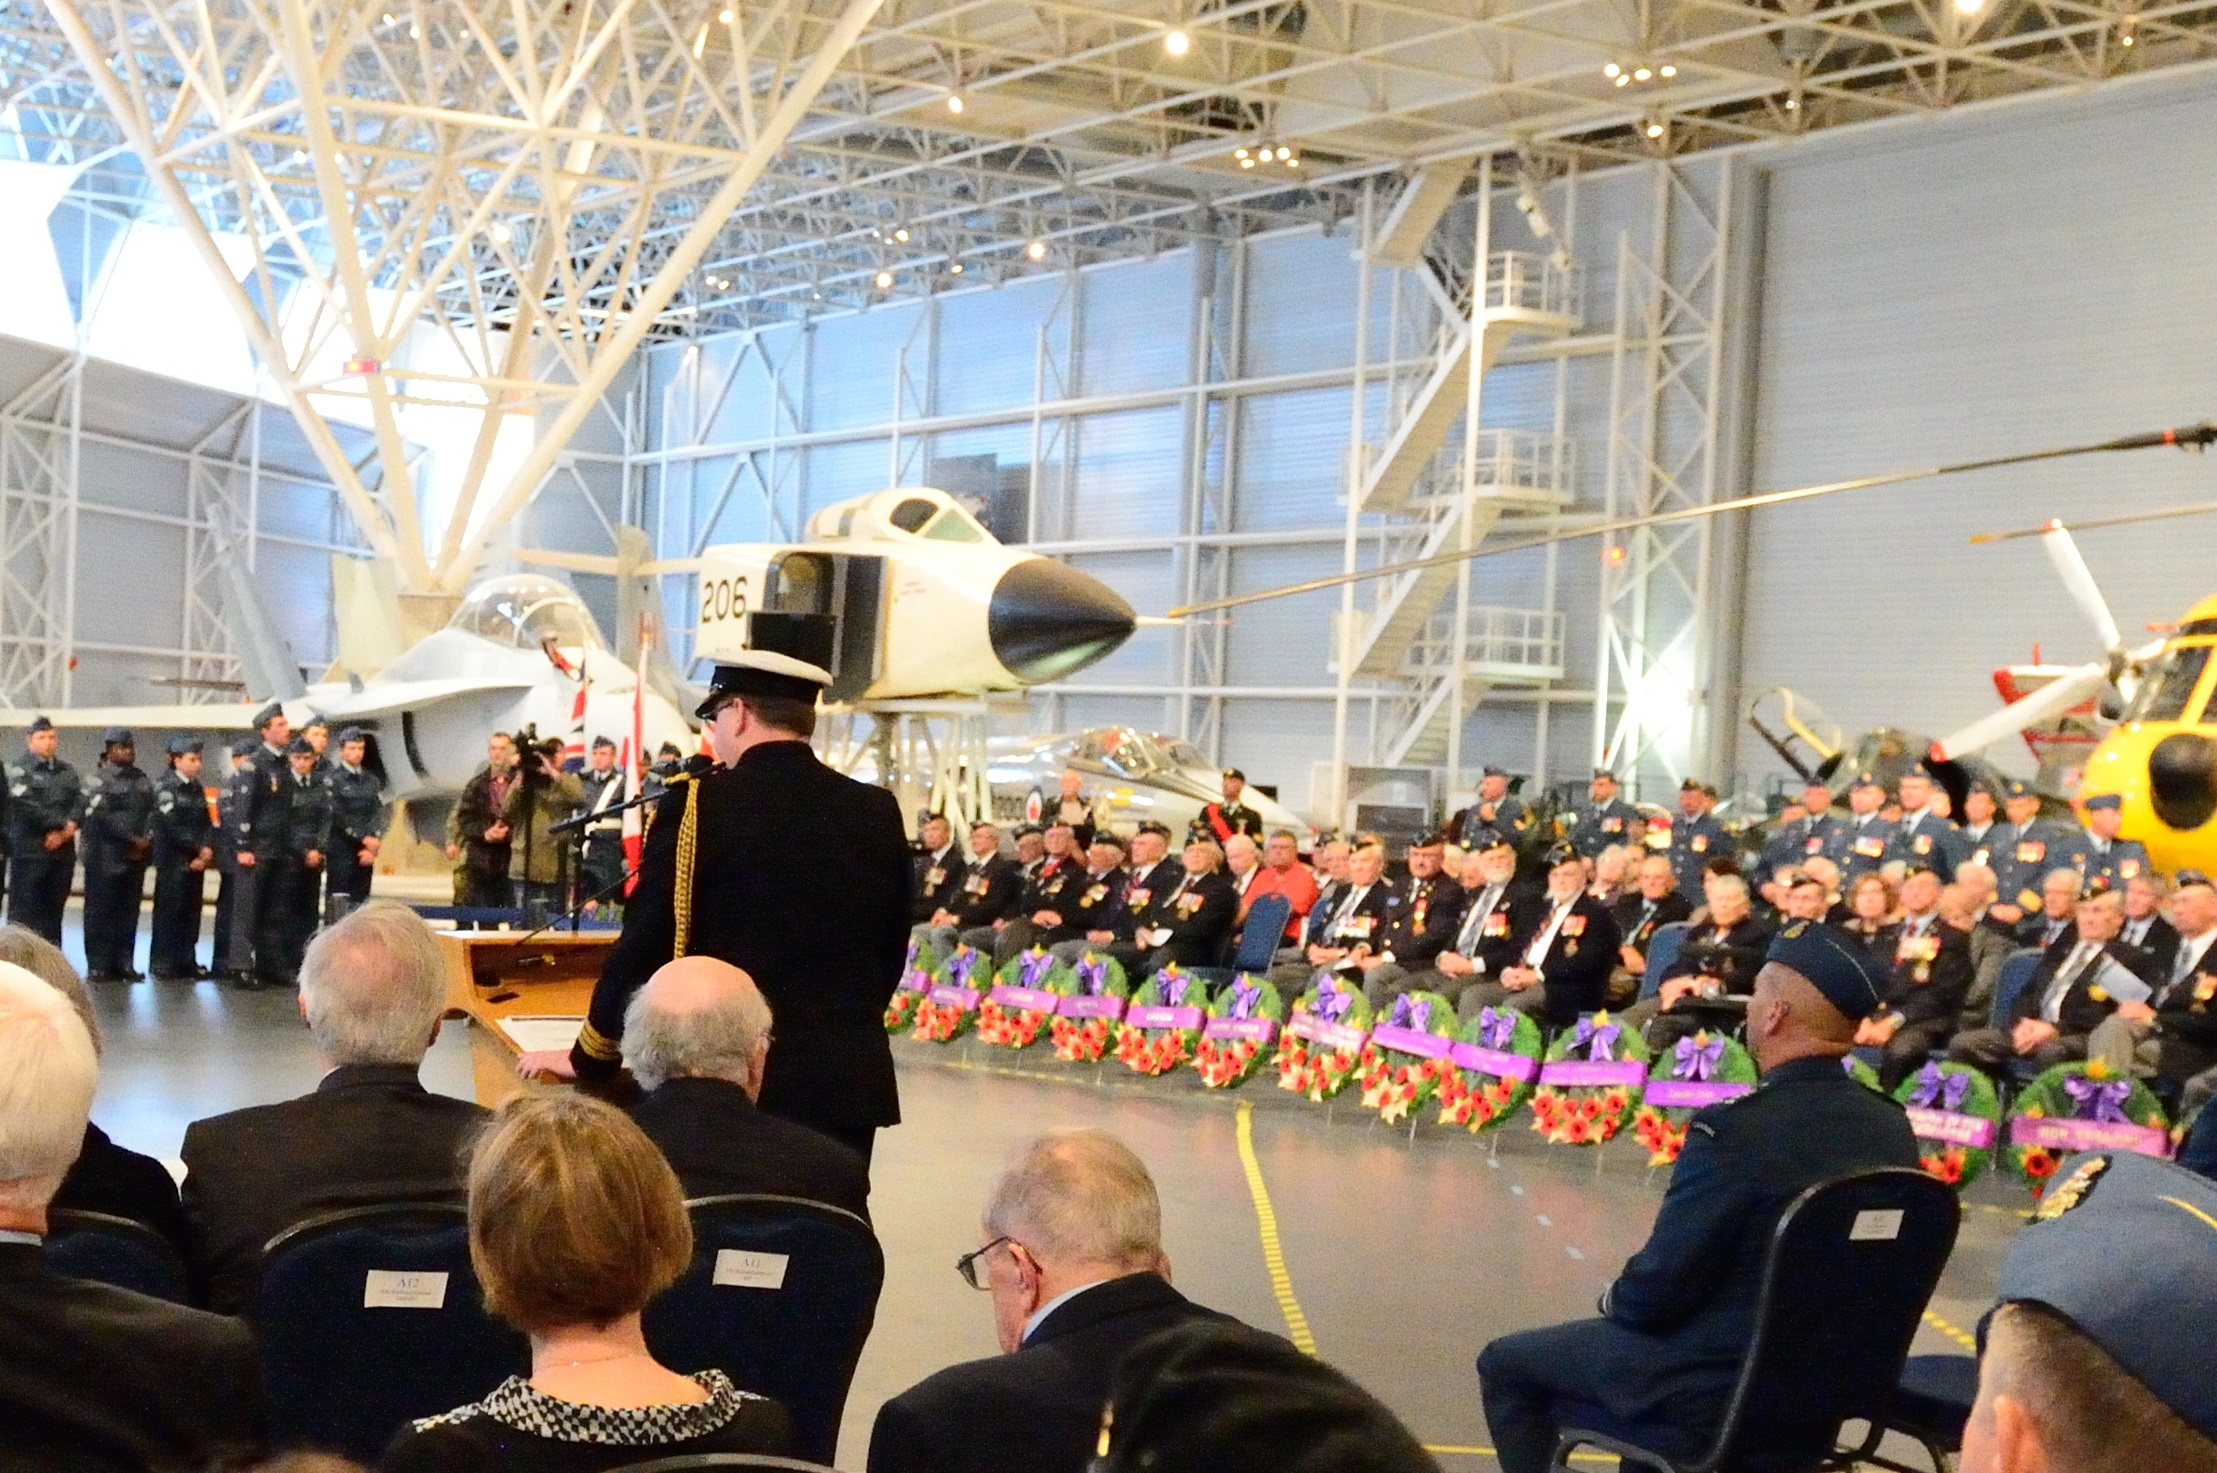 From their places of honour, Royal Canadian Air Force veterans (back right) listen as United Kingdom representative Commander Mike O'Sullivan speaks during the 2014 Battle of Britain Ceremony at the Canada Aviation and Space Museum in Ottawa, Ontario. PHOTO: Corporal Chase Miller